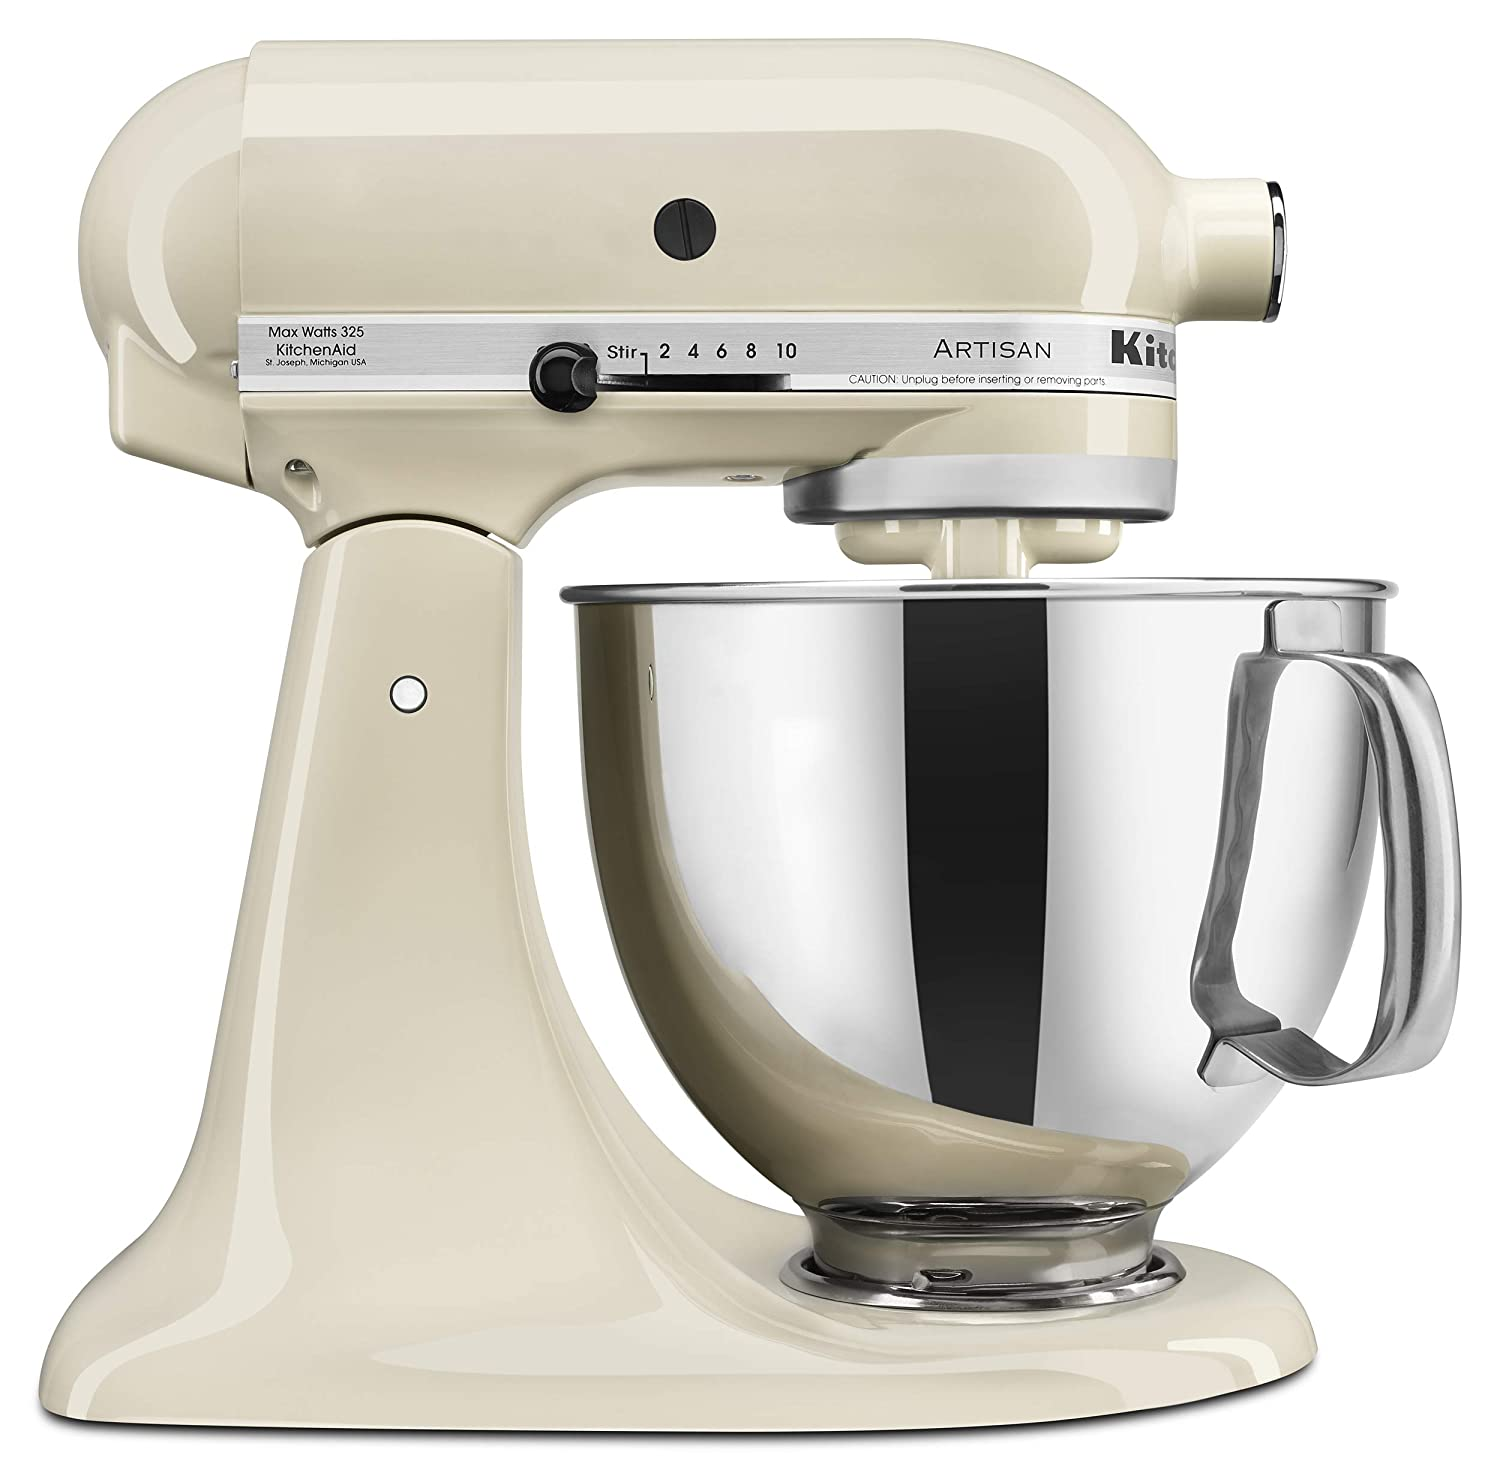 Top 8 Best Stand Mixers Reviews in 2020 You Can Consider 4